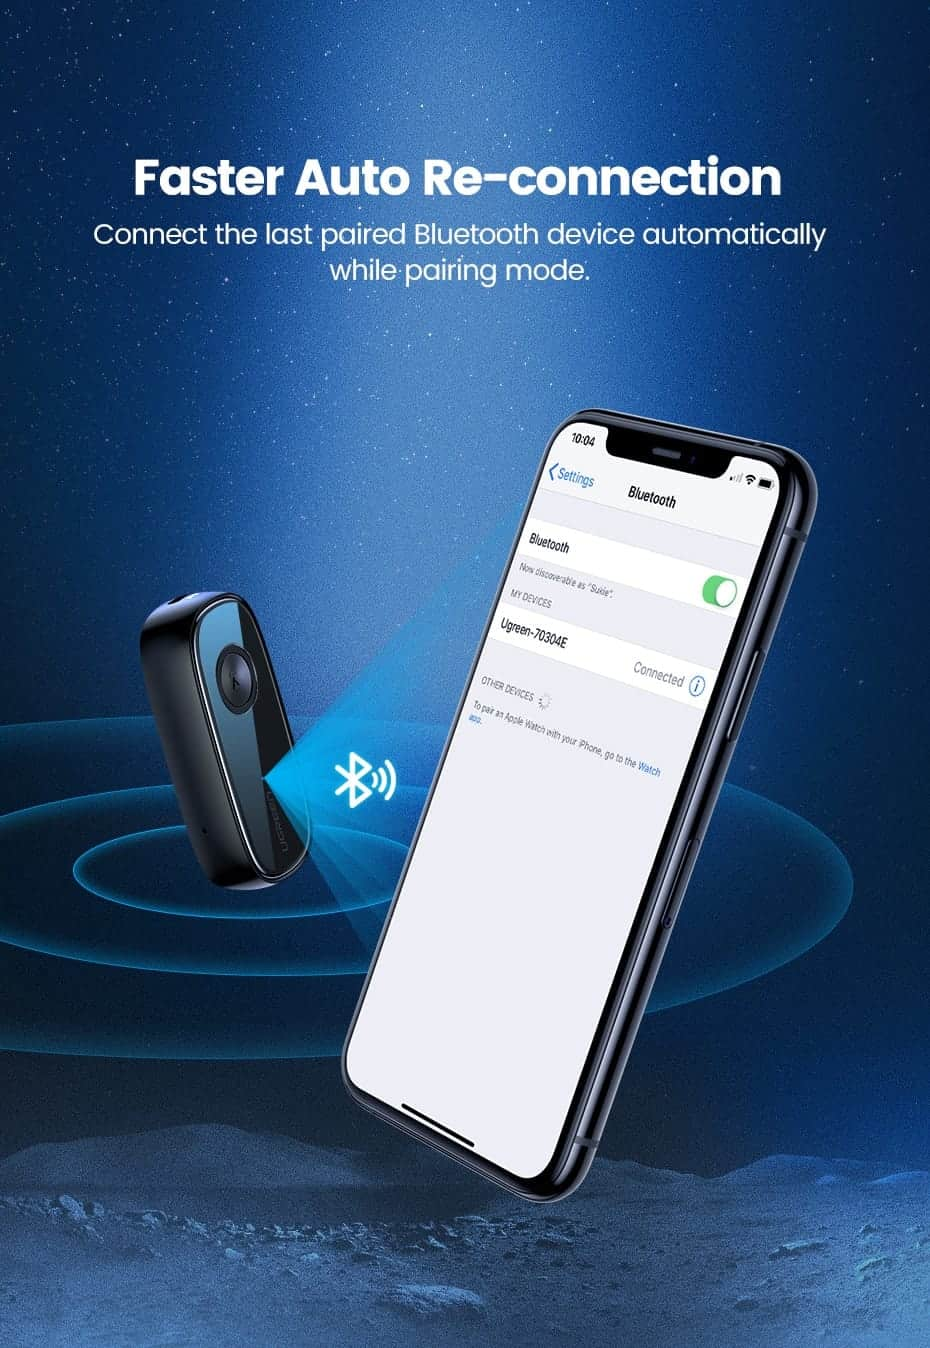 Ugreen Bluetooth Receiver 5.0 Fast Auto Re-connection